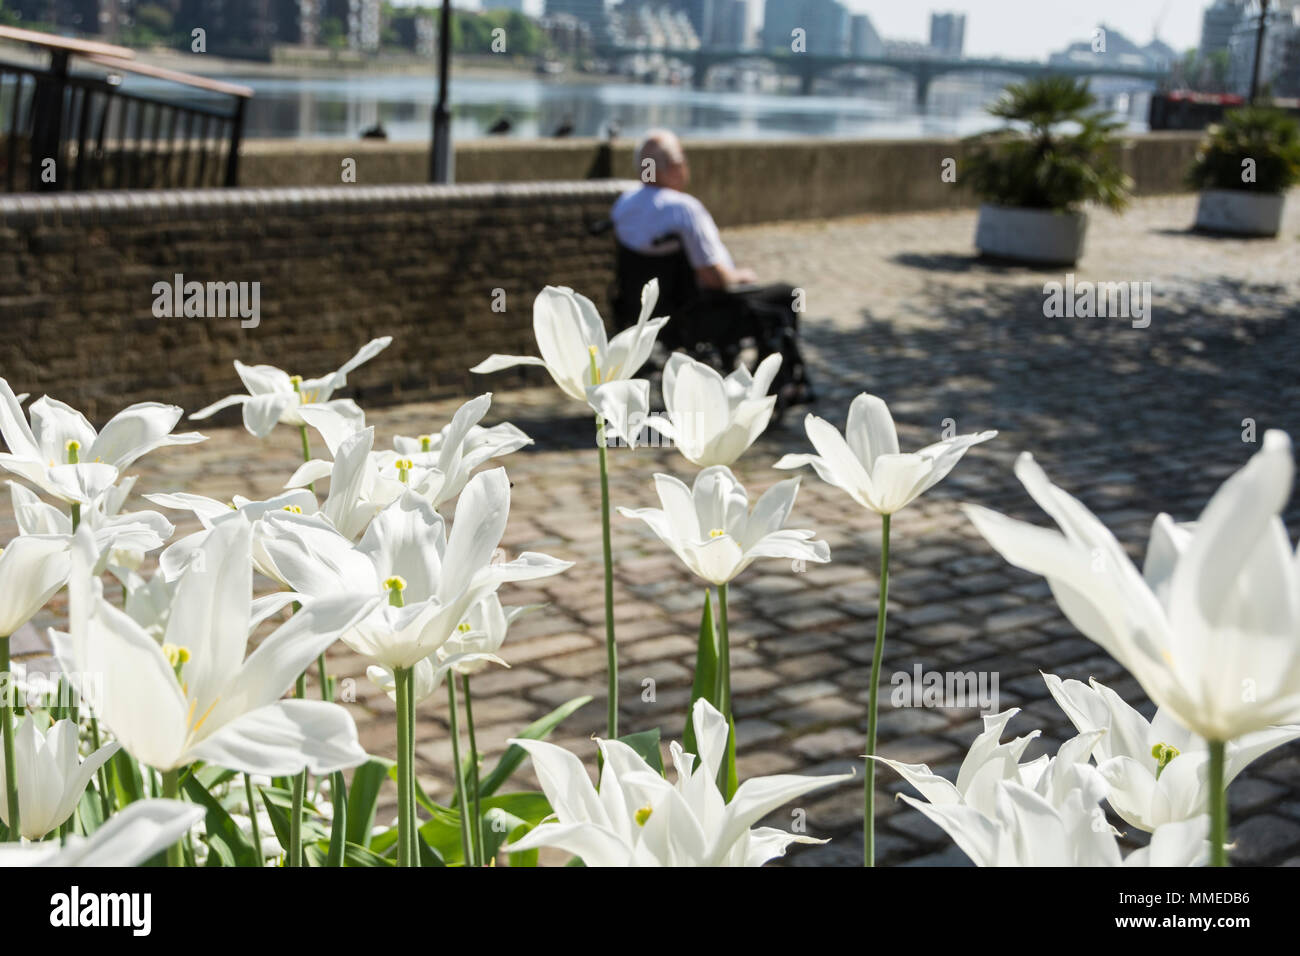 Disability Awareness week - An elderly man in a wheelchair surrounded by white lilies - Stock Image